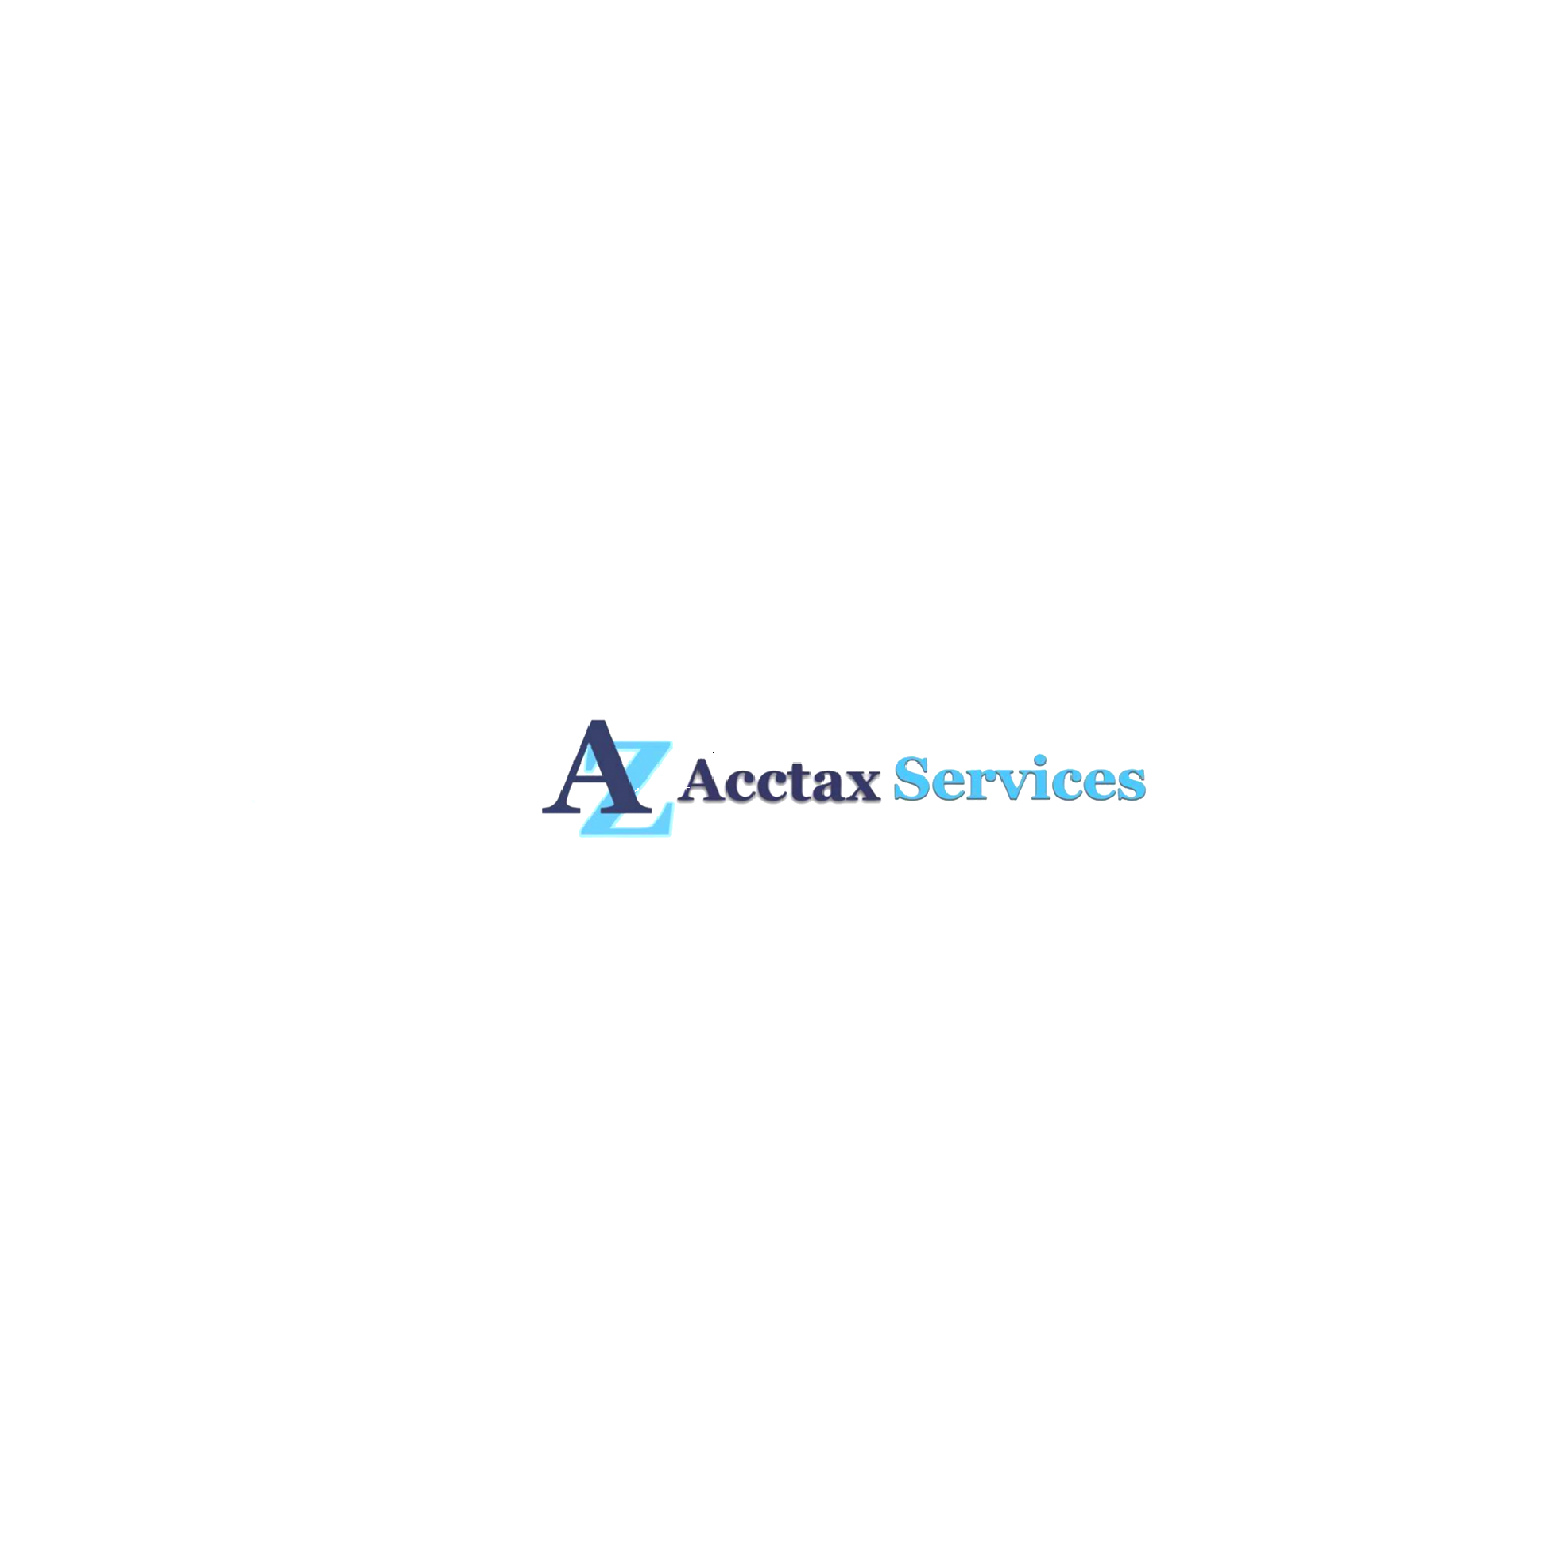 A-Z Acctax Services